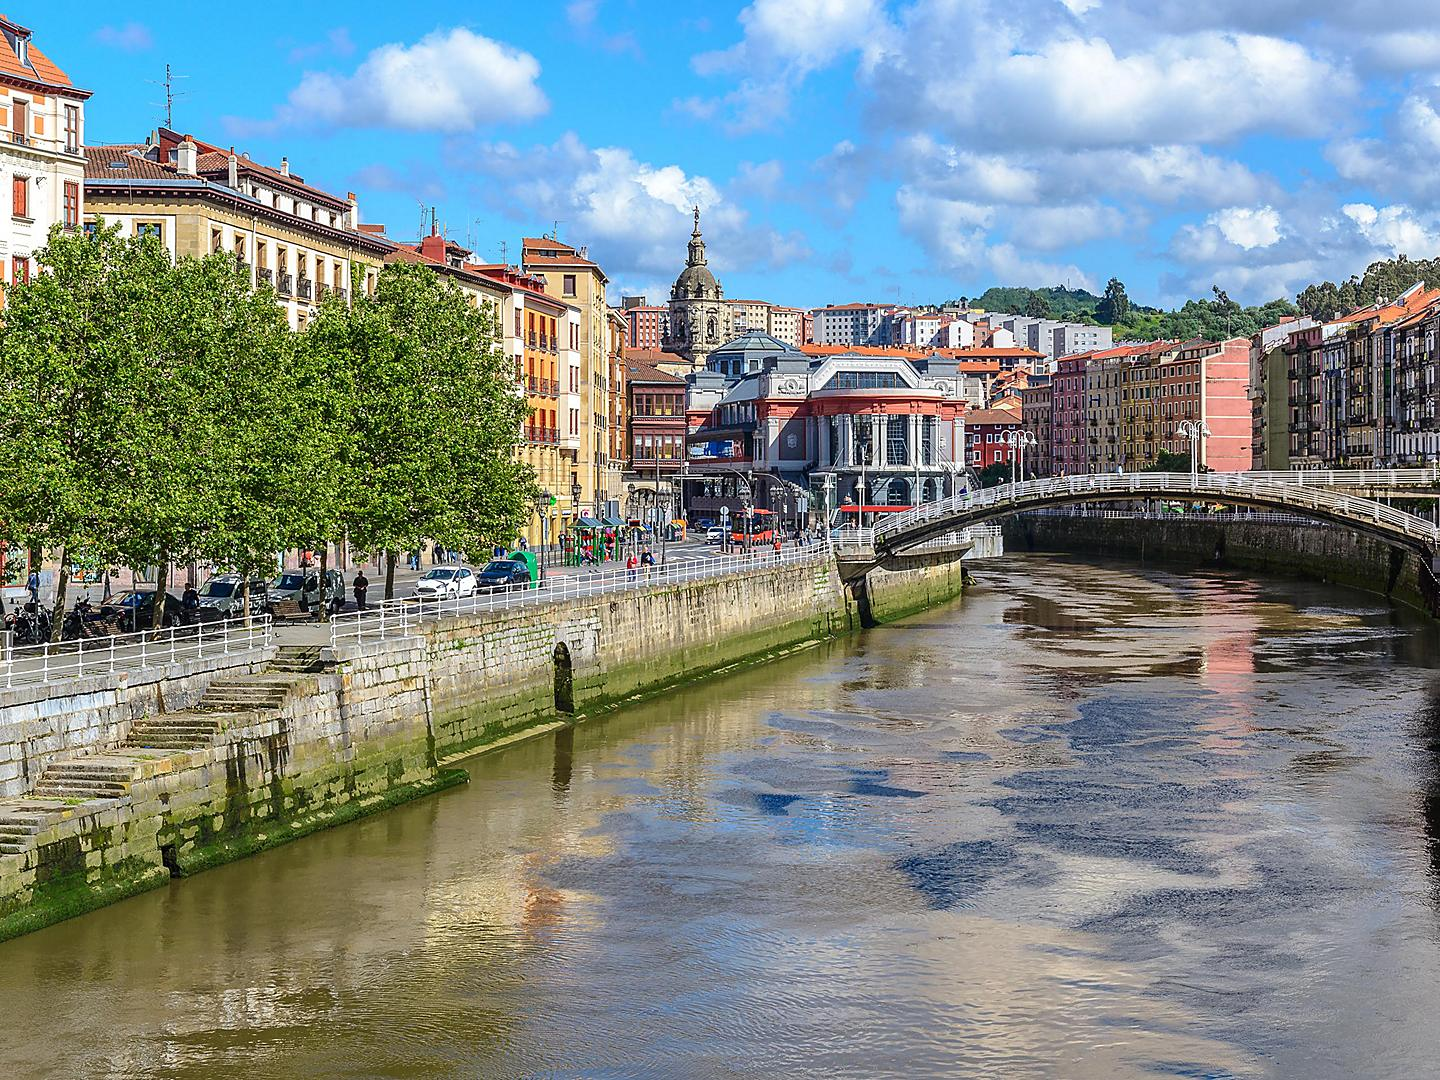 Bilbao, Spain River Running Through City